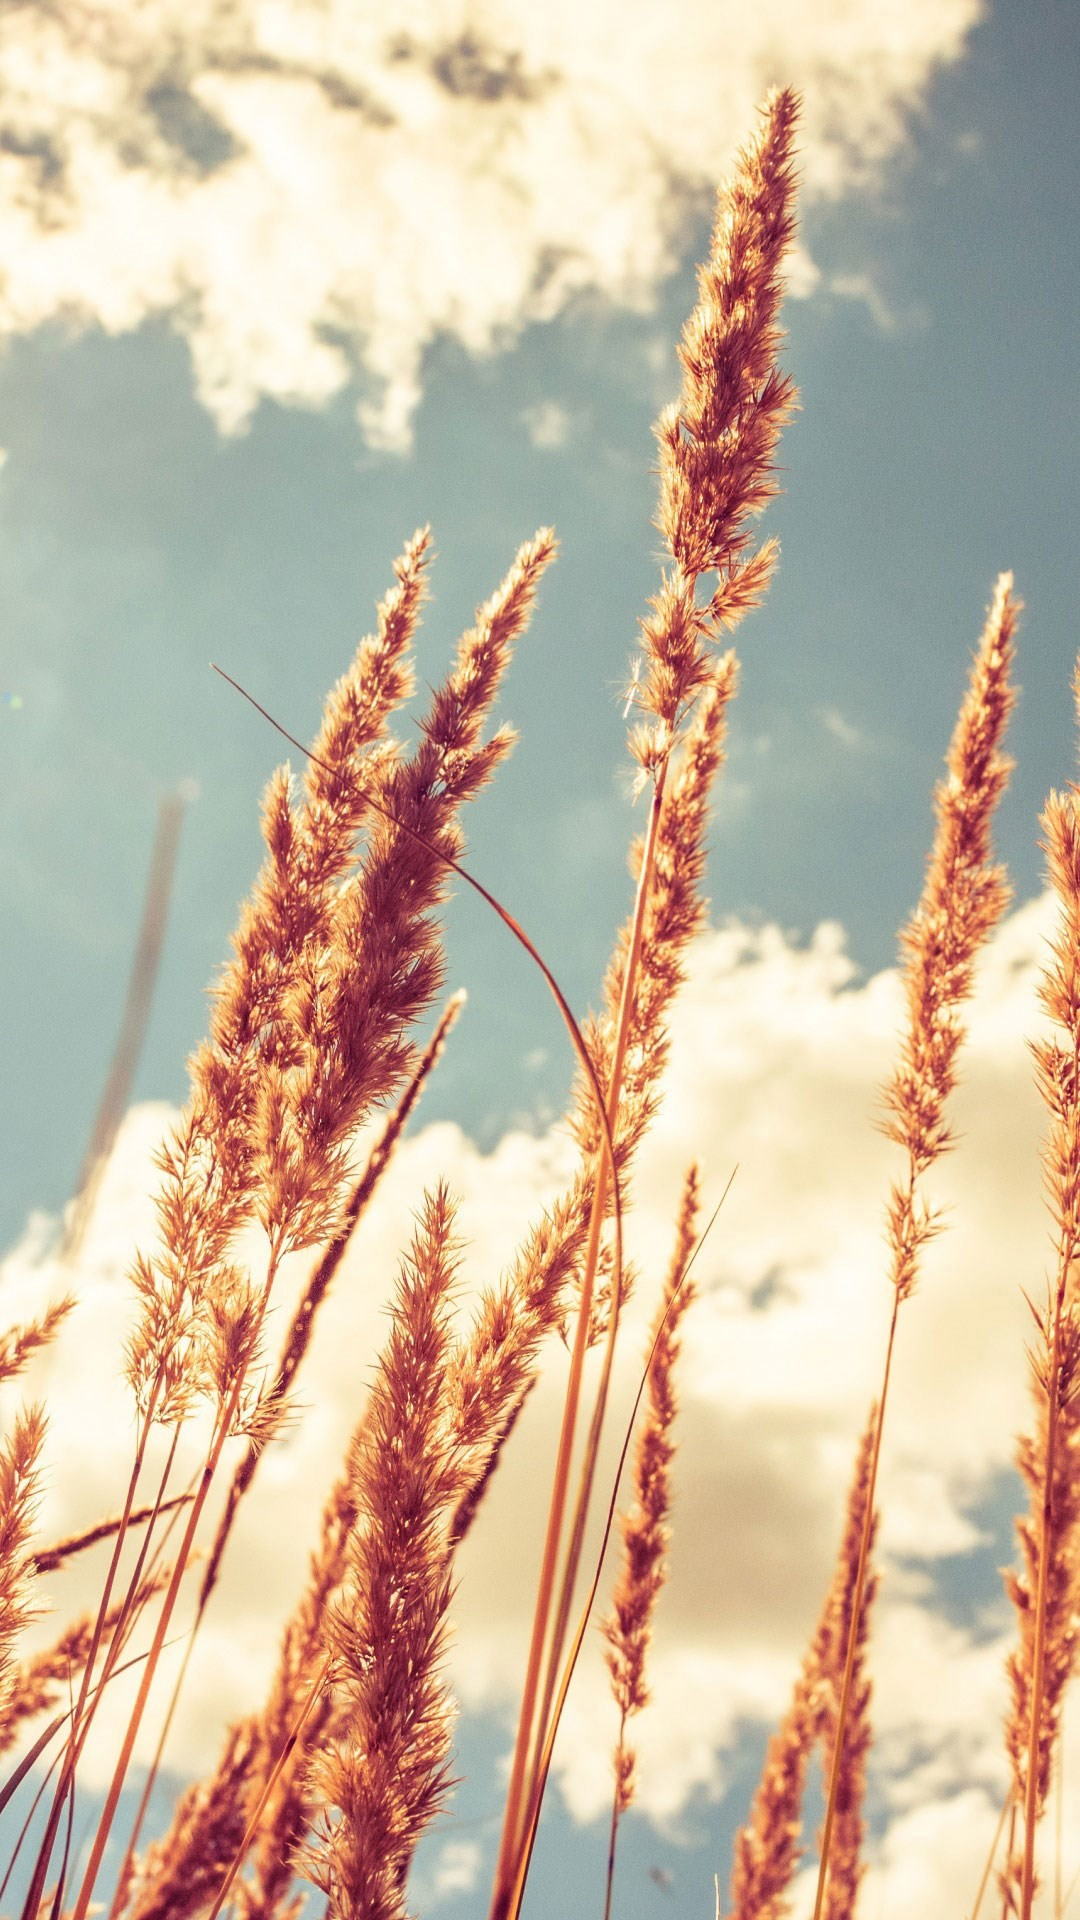 Rice plant wallpapers for free download about (67) wallpapers.